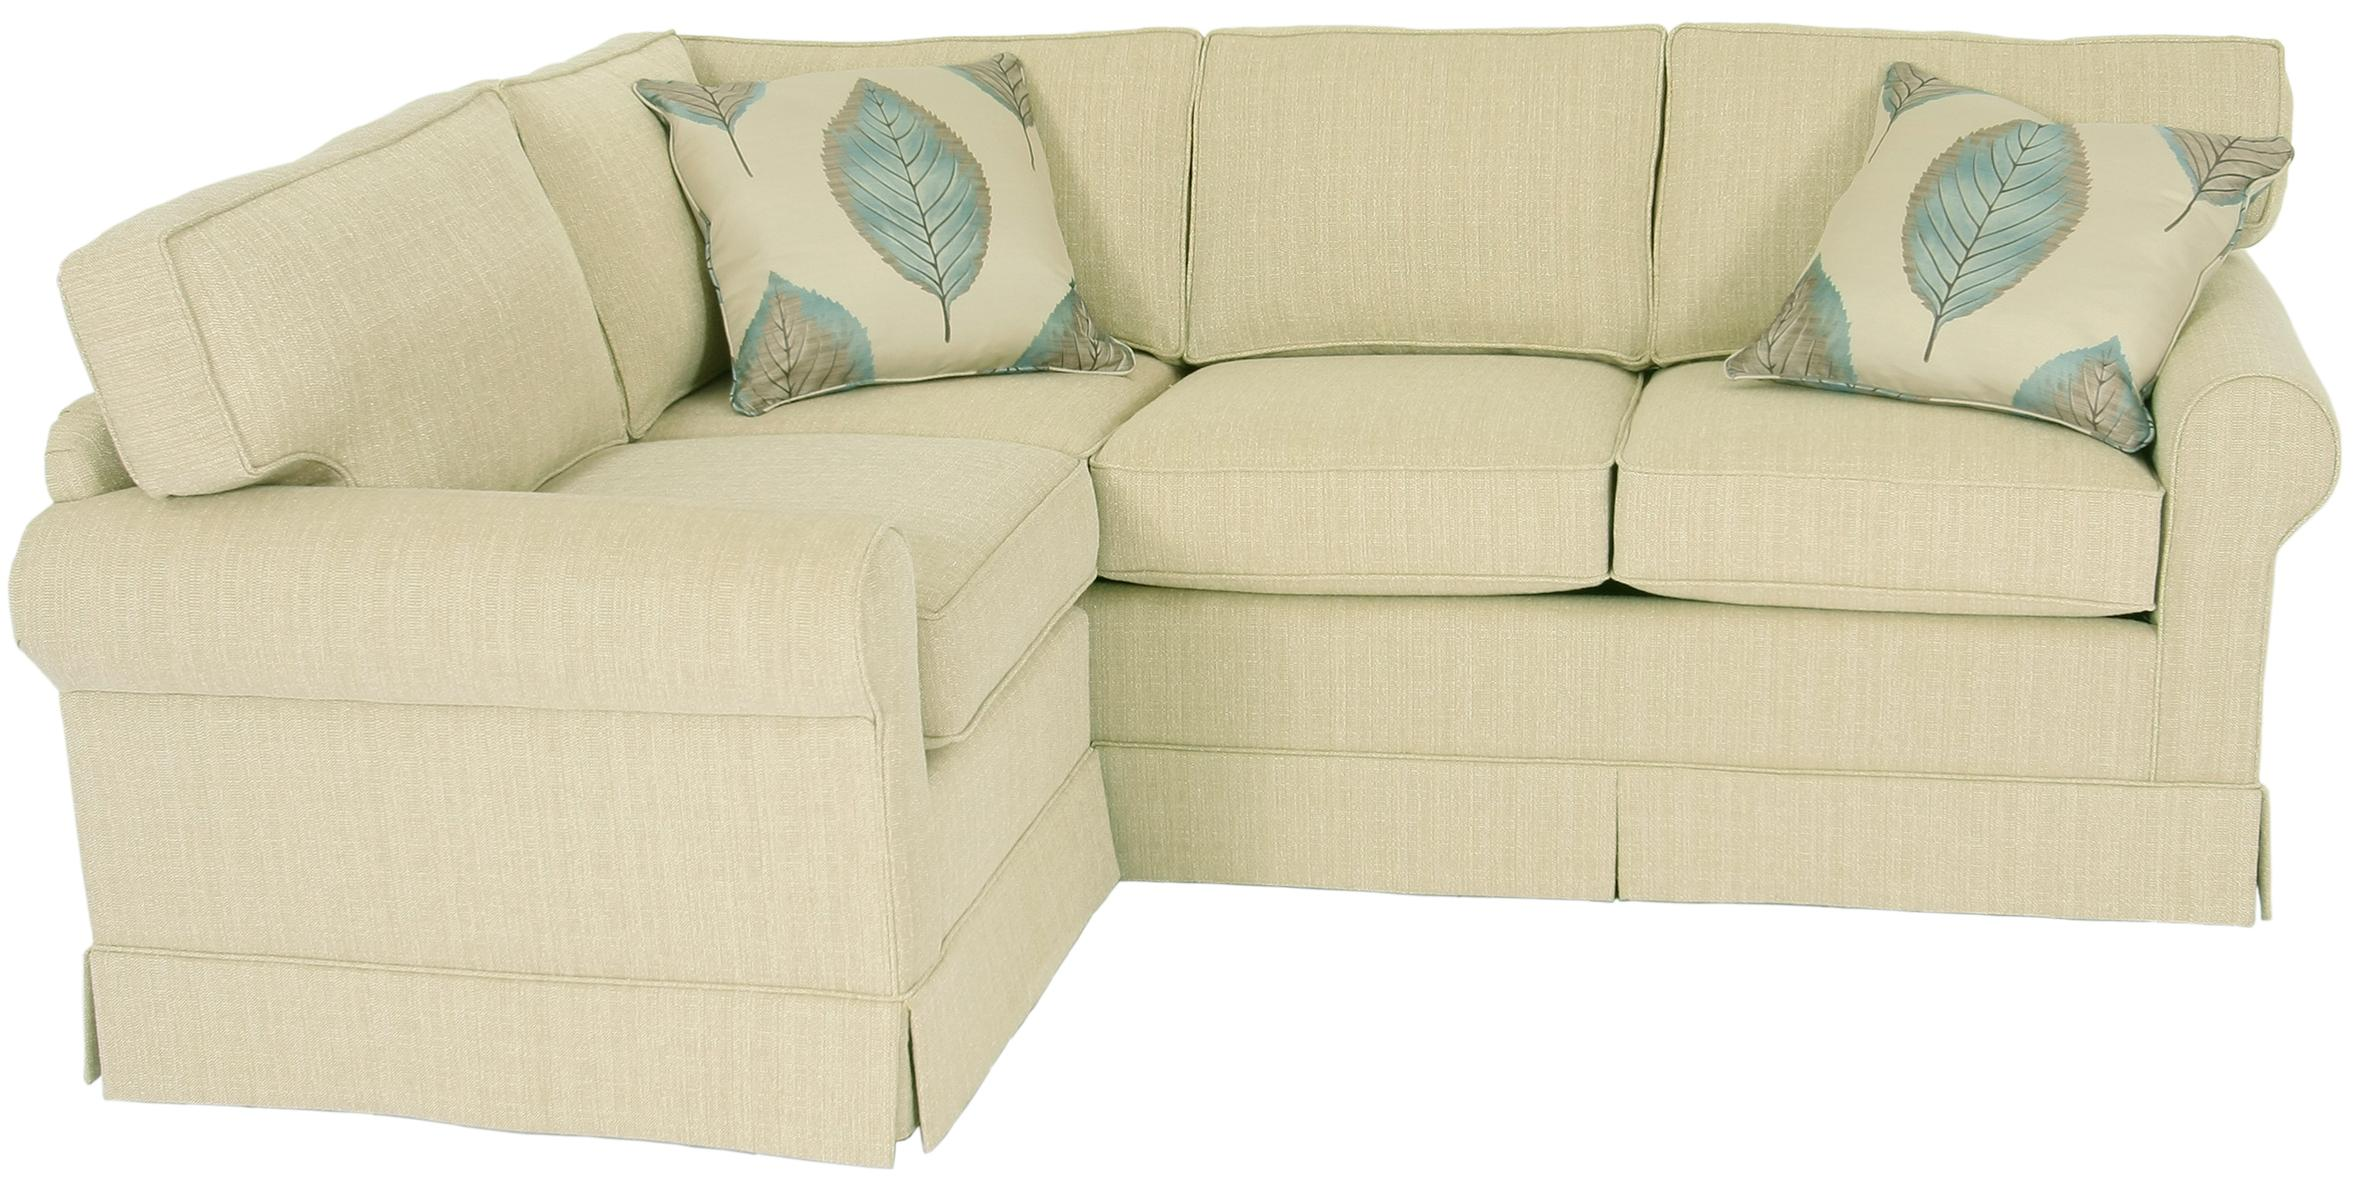 Copley Square Sectional by Norwalk at Saugerties Furniture Mart